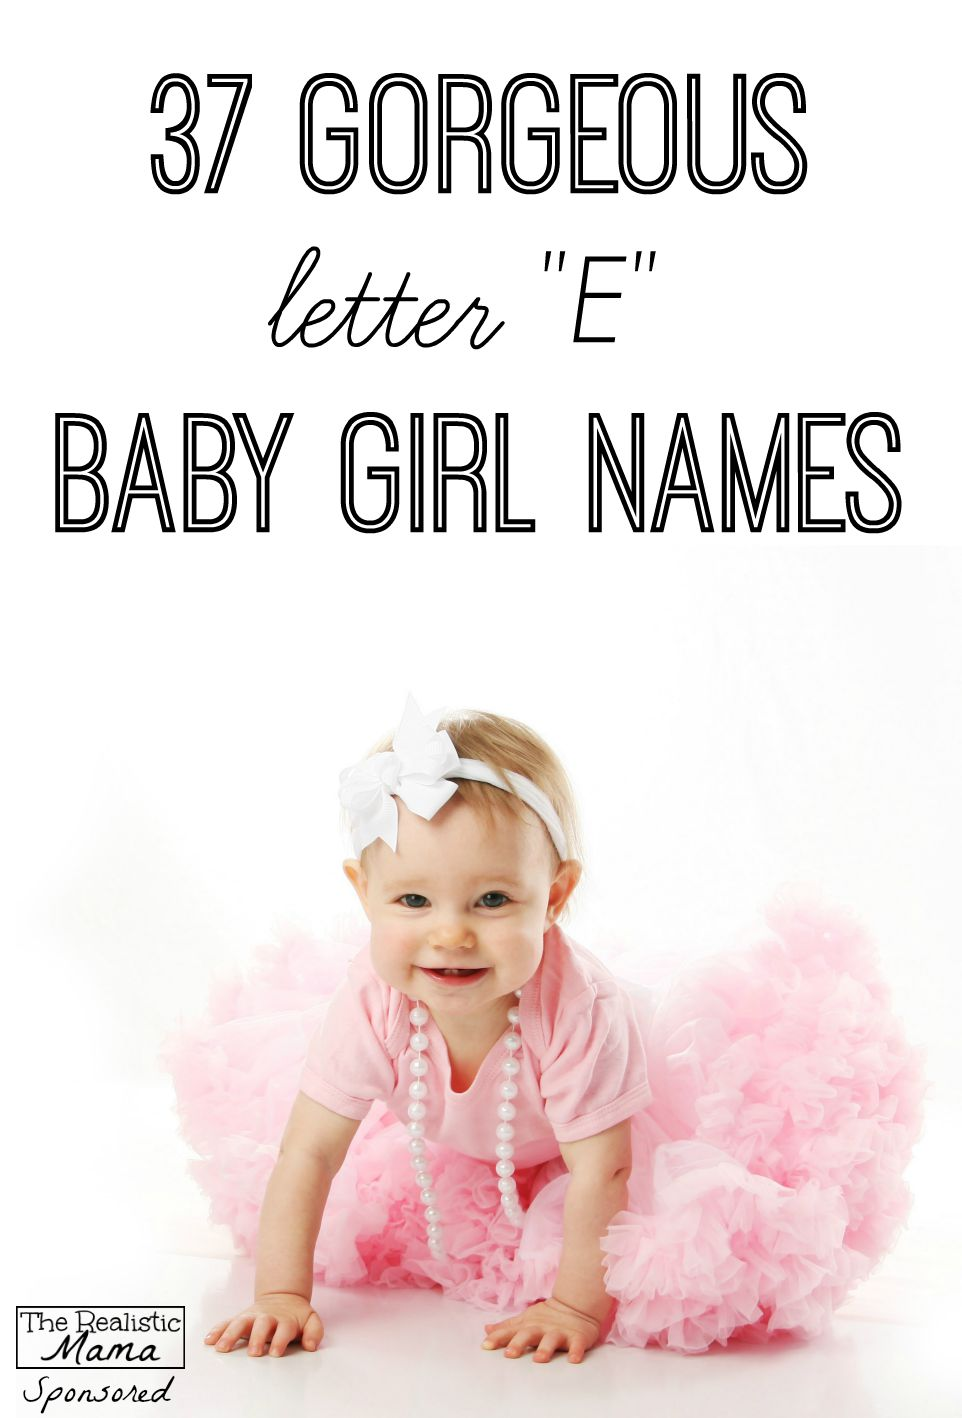 "37 Gorgeous Letter ""E"" Baby Girl Names"